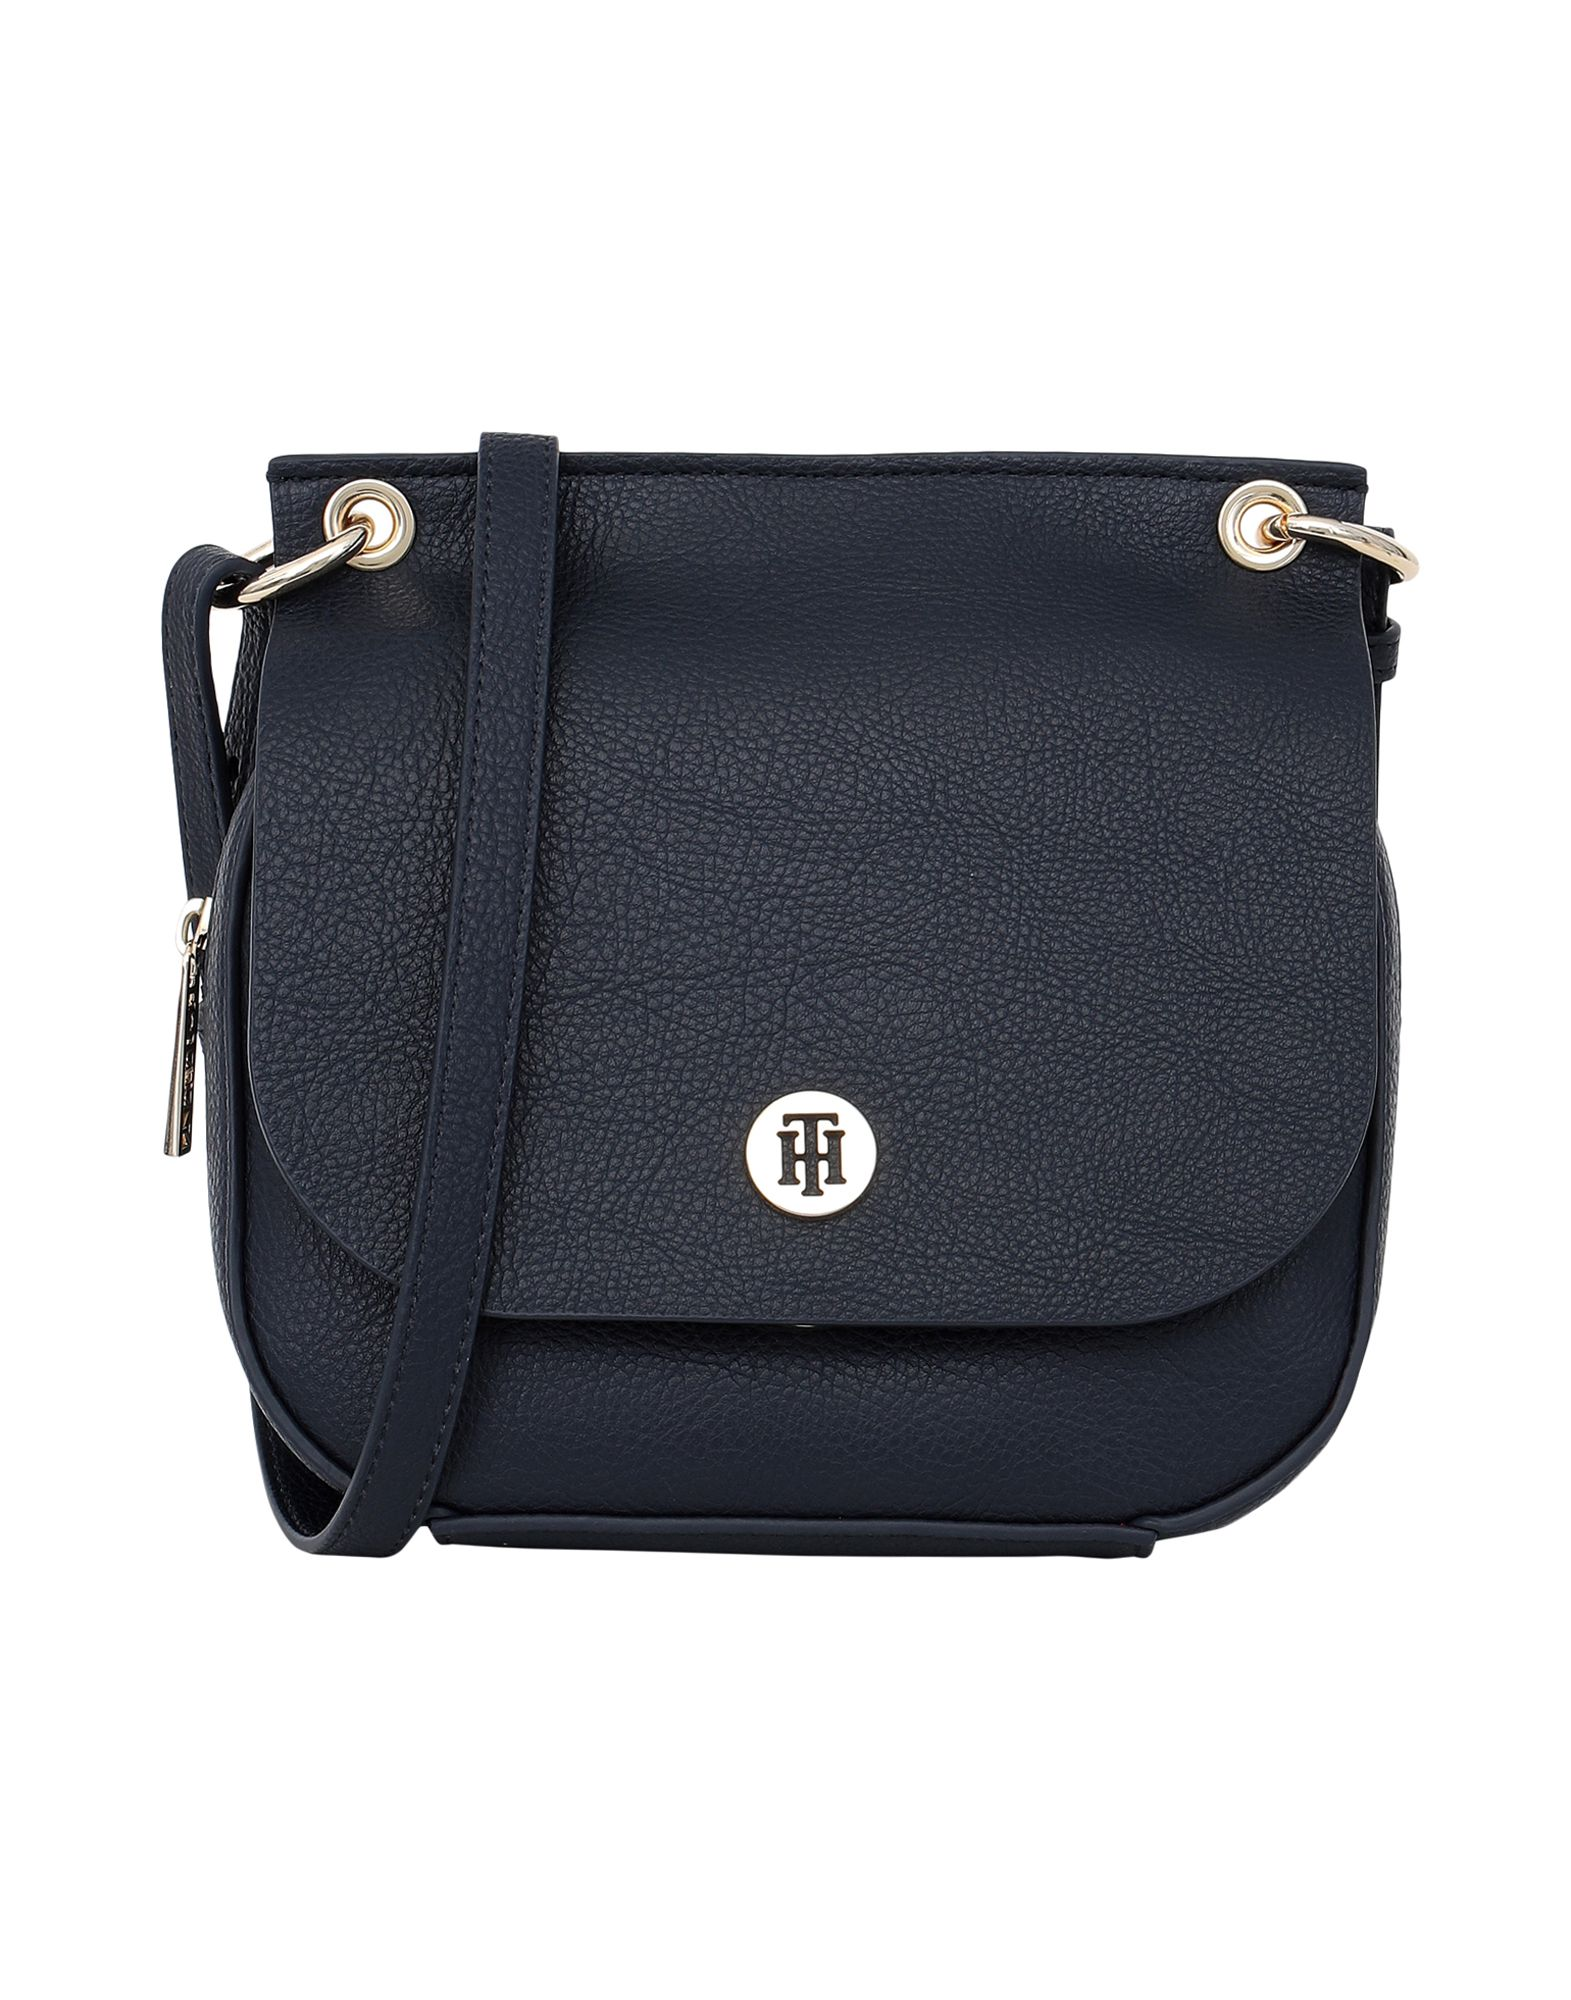 TOMMY HILFIGER | TOMMY HILFIGER Cross-Body Bags 45453280 | Goxip